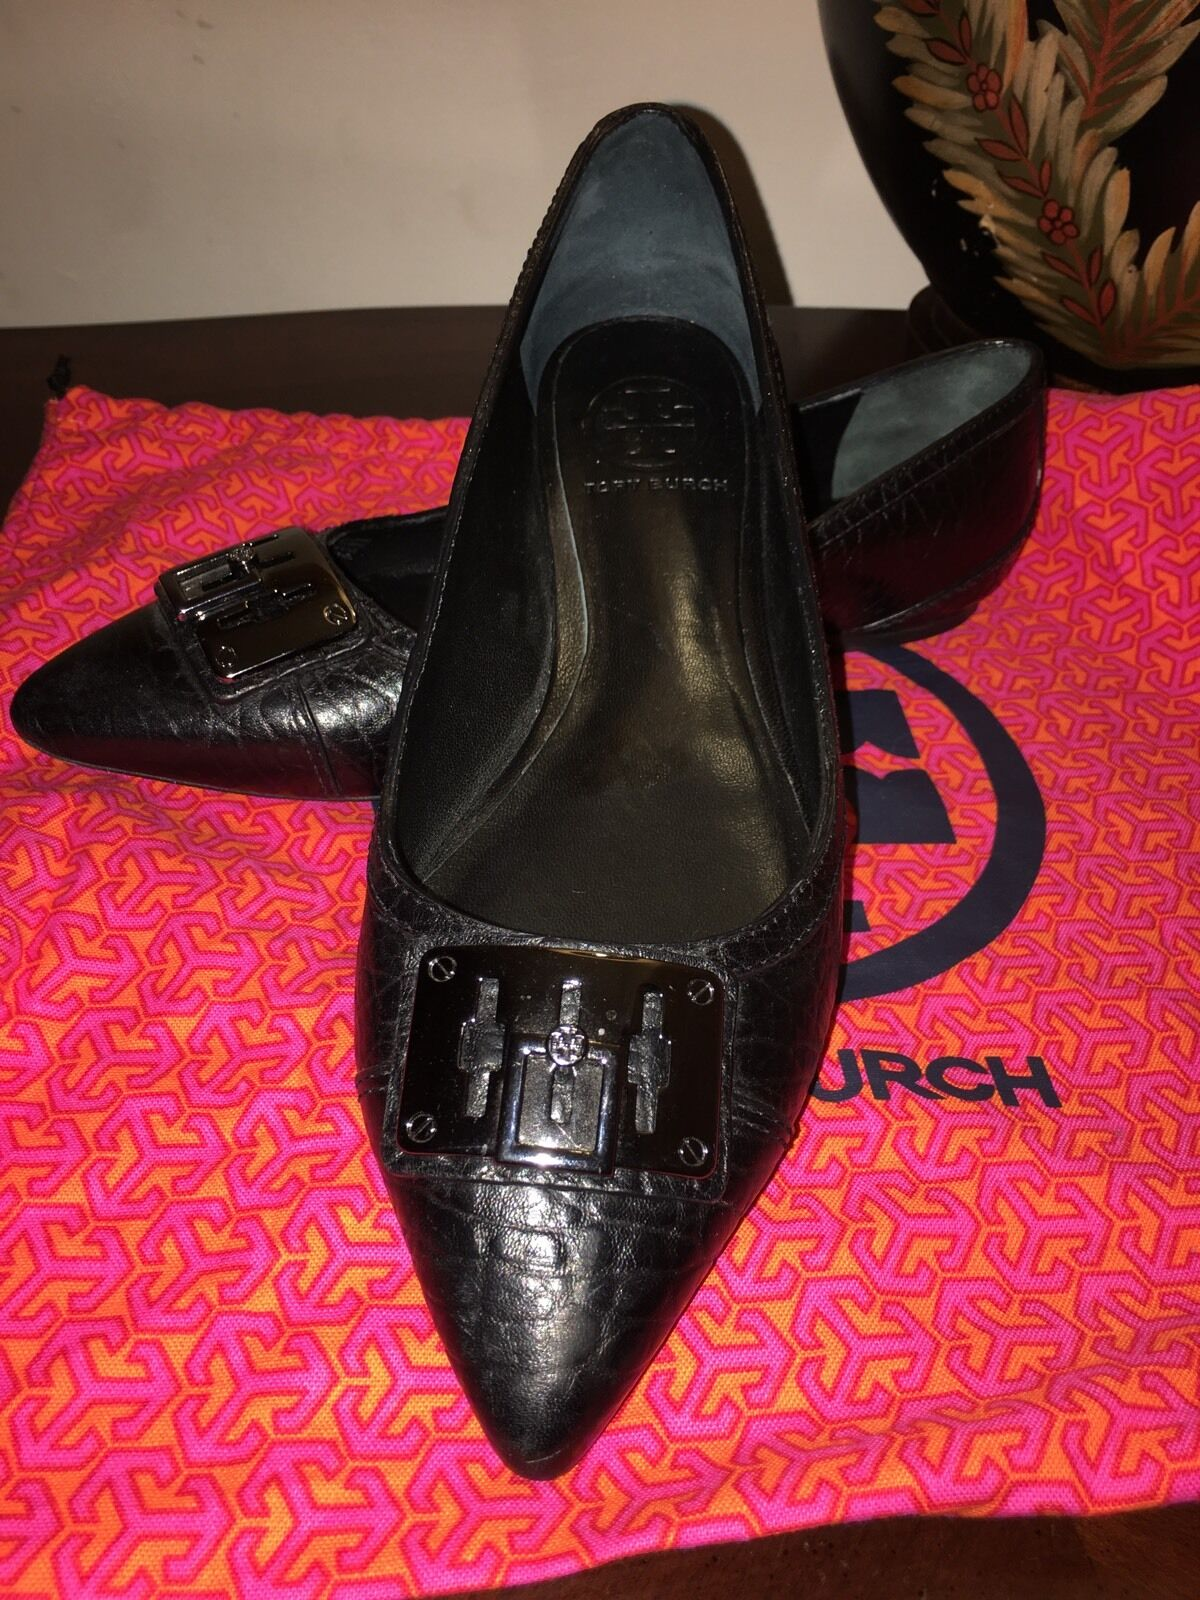 Tory Burch SHOES SHOES Burch FLATS BLACK LEATHER 7.5M 7f5a85